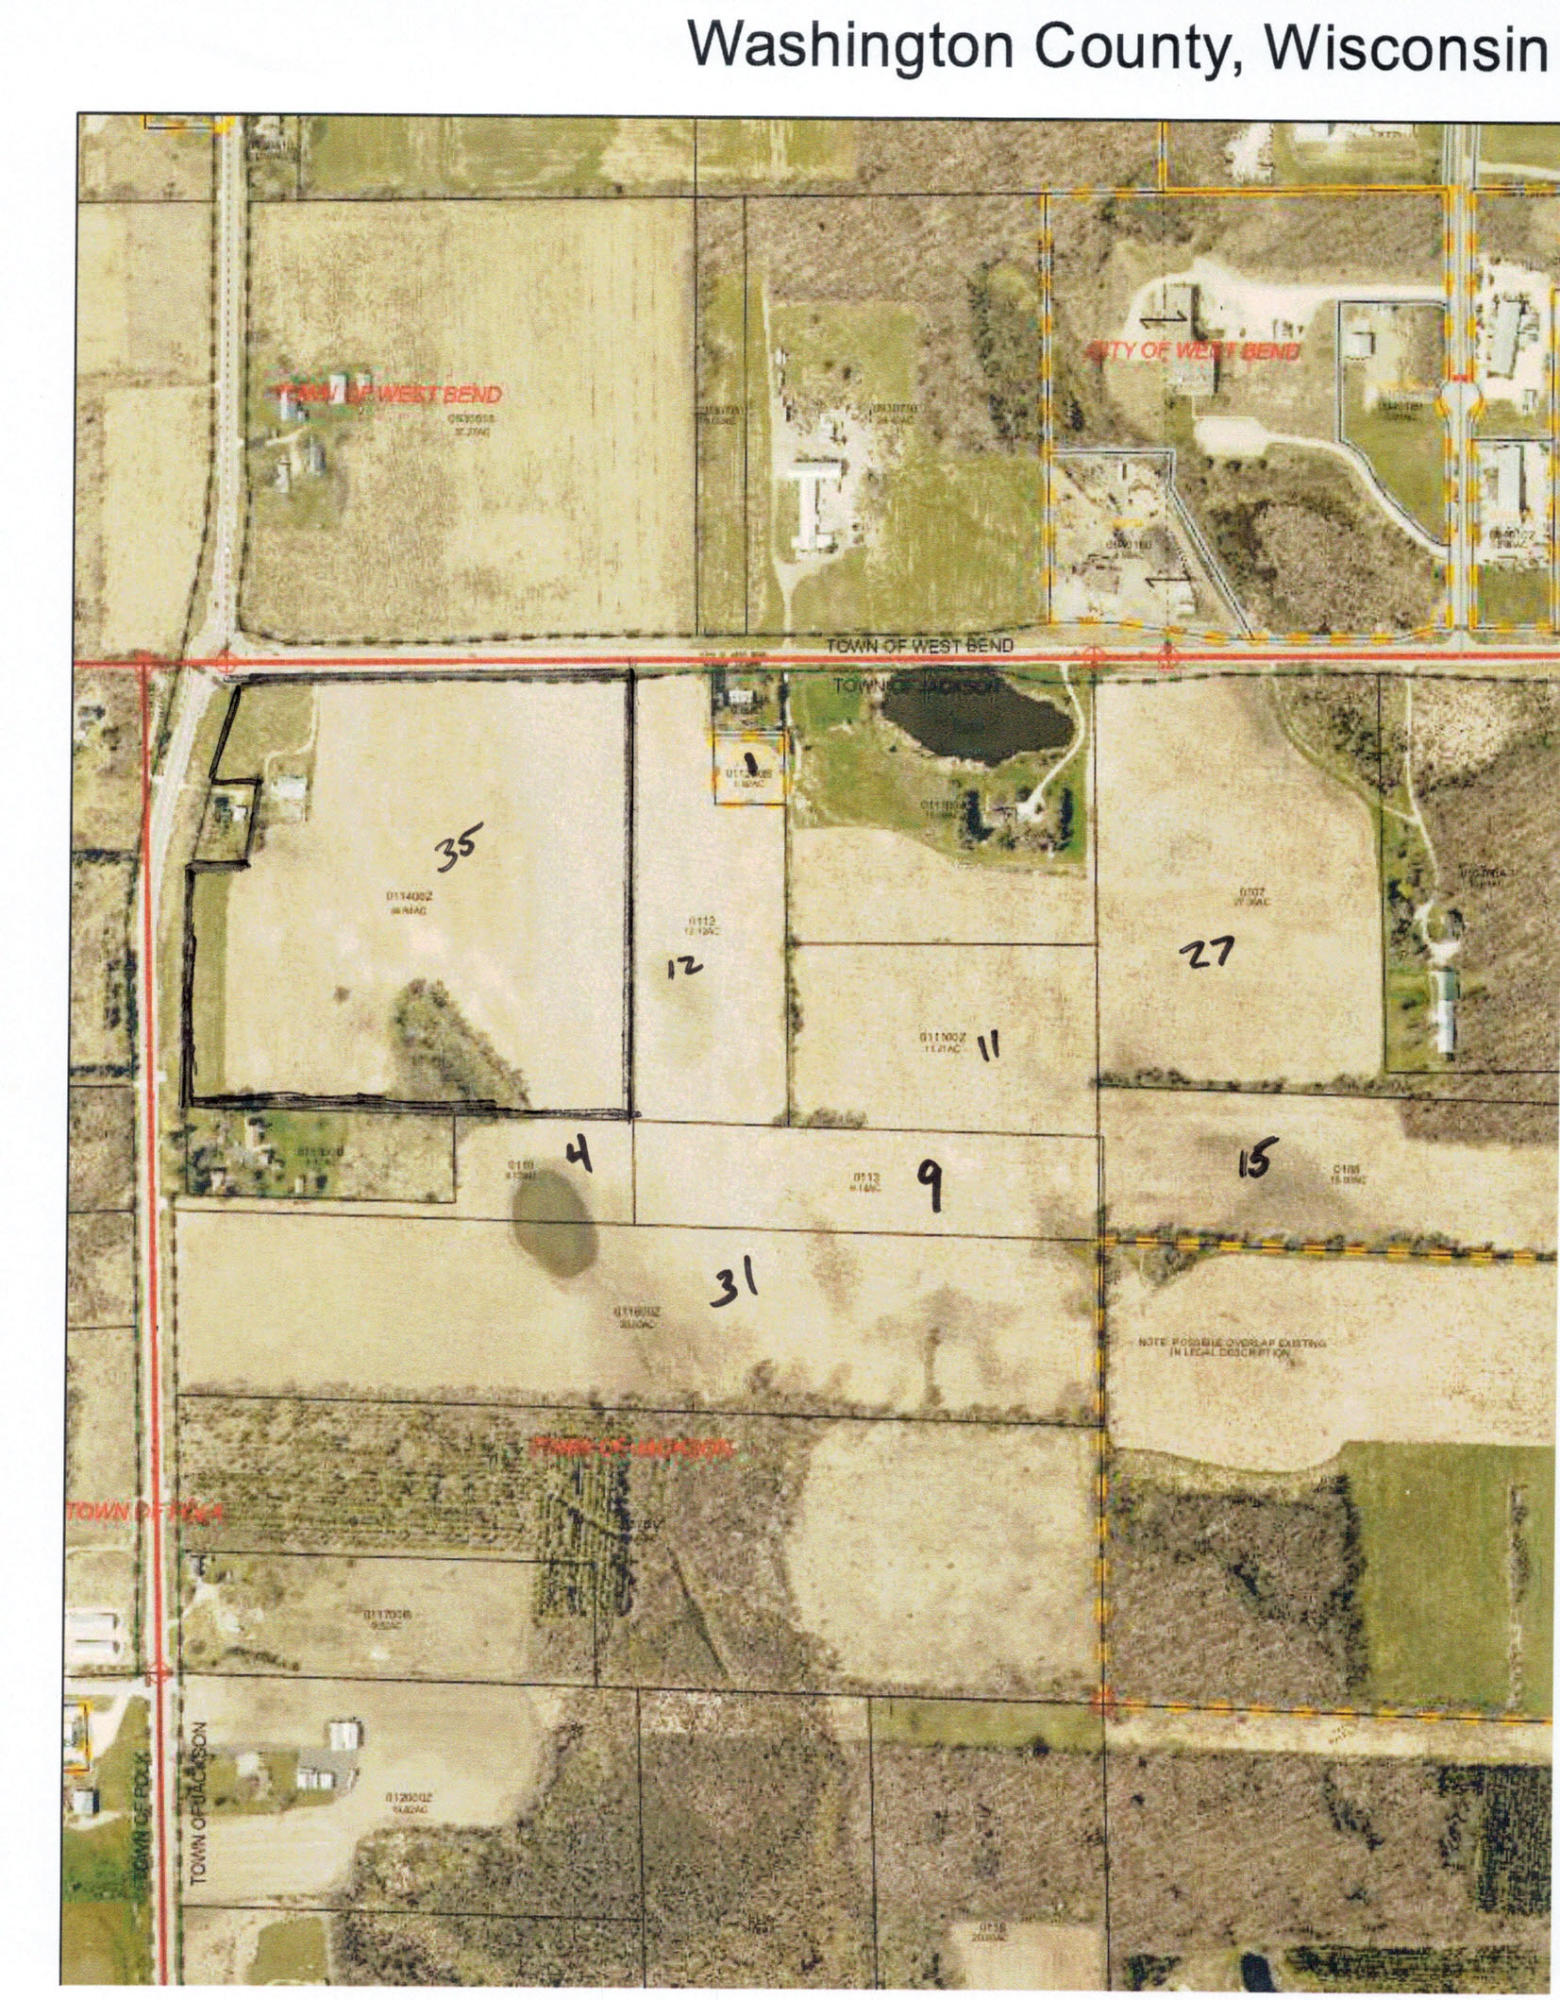 Property for sale at Lt0 County Road Nn, West Bend,  Wisconsin 53095